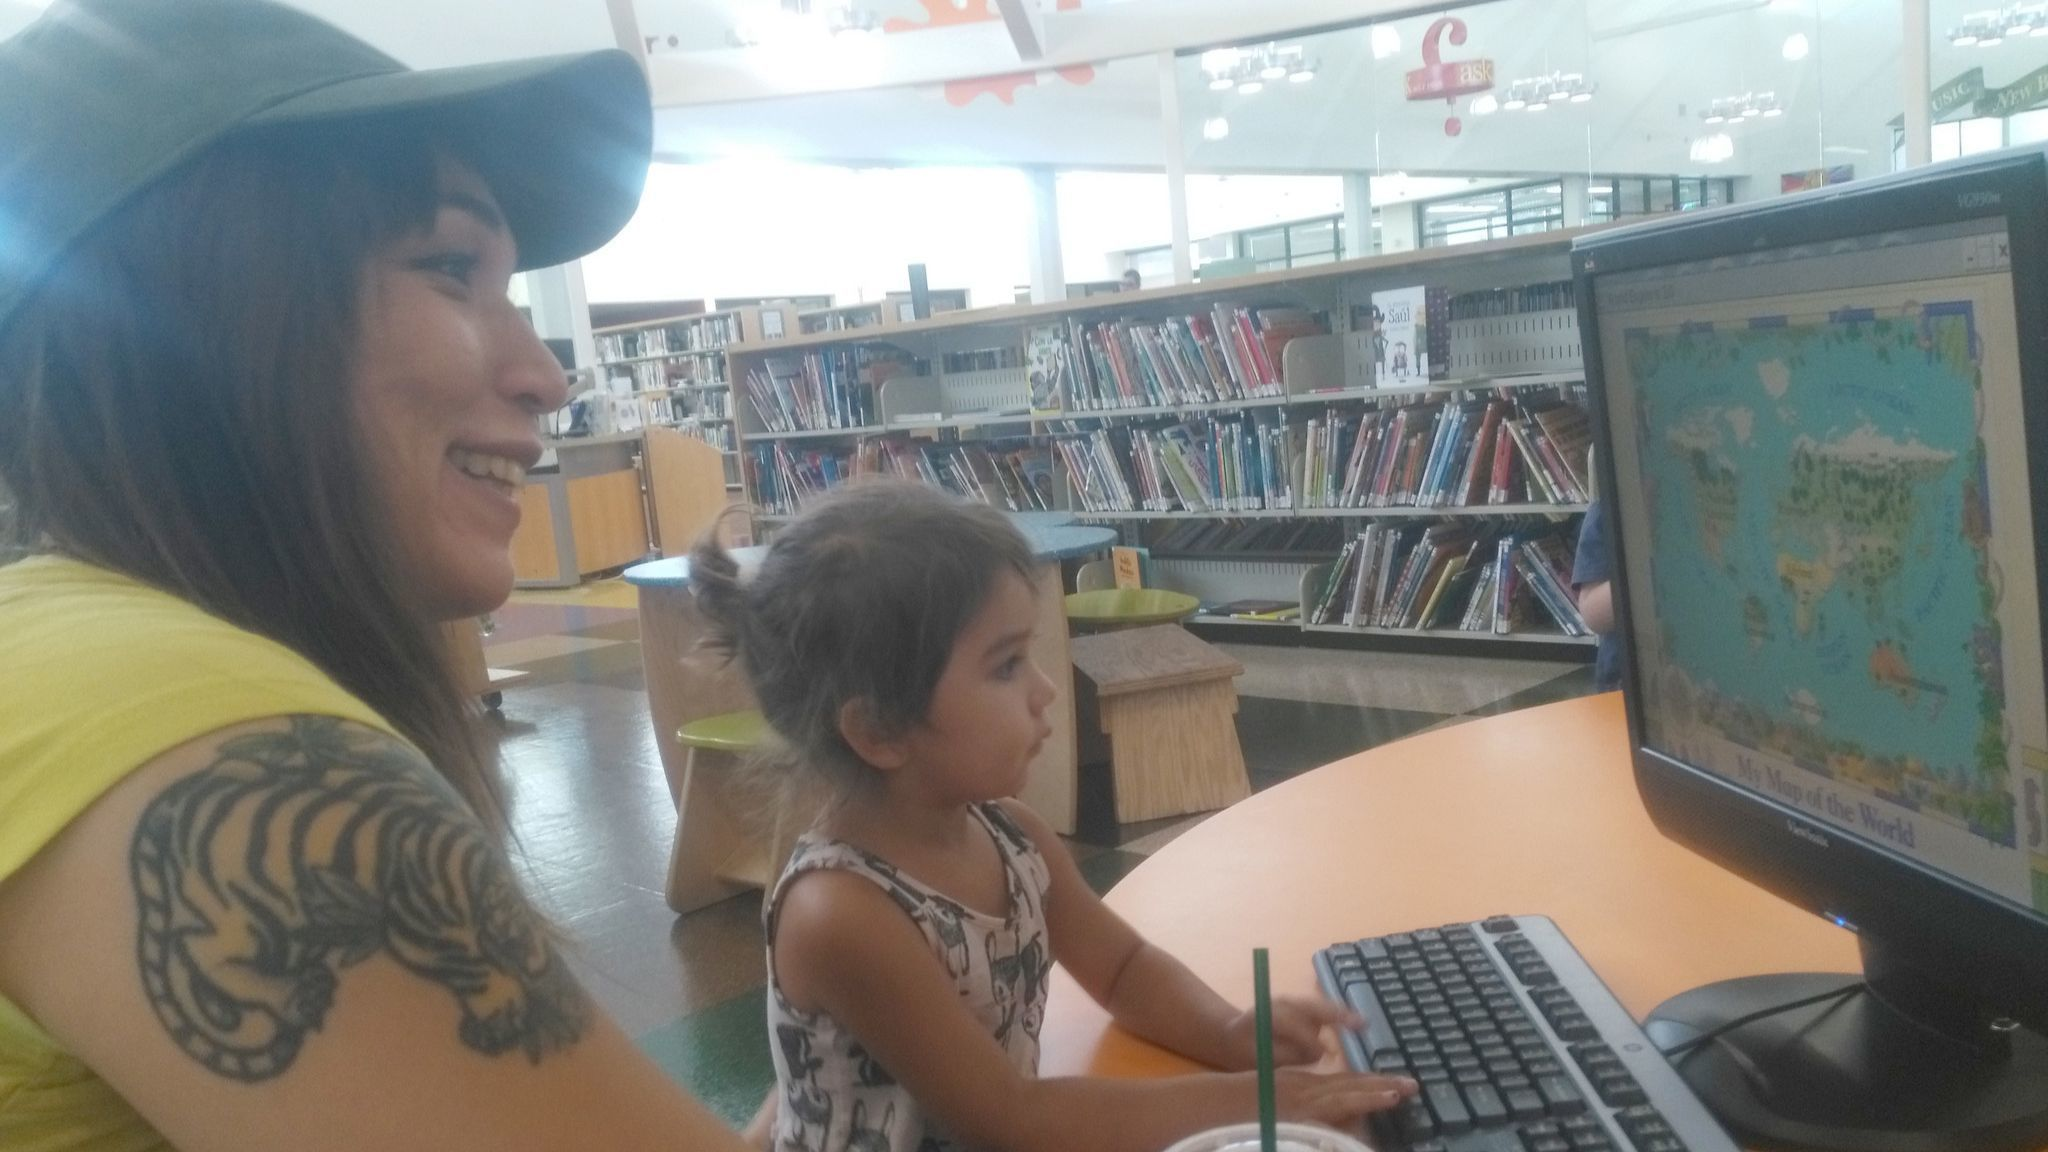 Nicole Beltran and daughter Penny cool down at the Ramona Library on July 6. Nicole enjoyed a refreshing iced coffee while Penny had one of the library's free summer lunches.